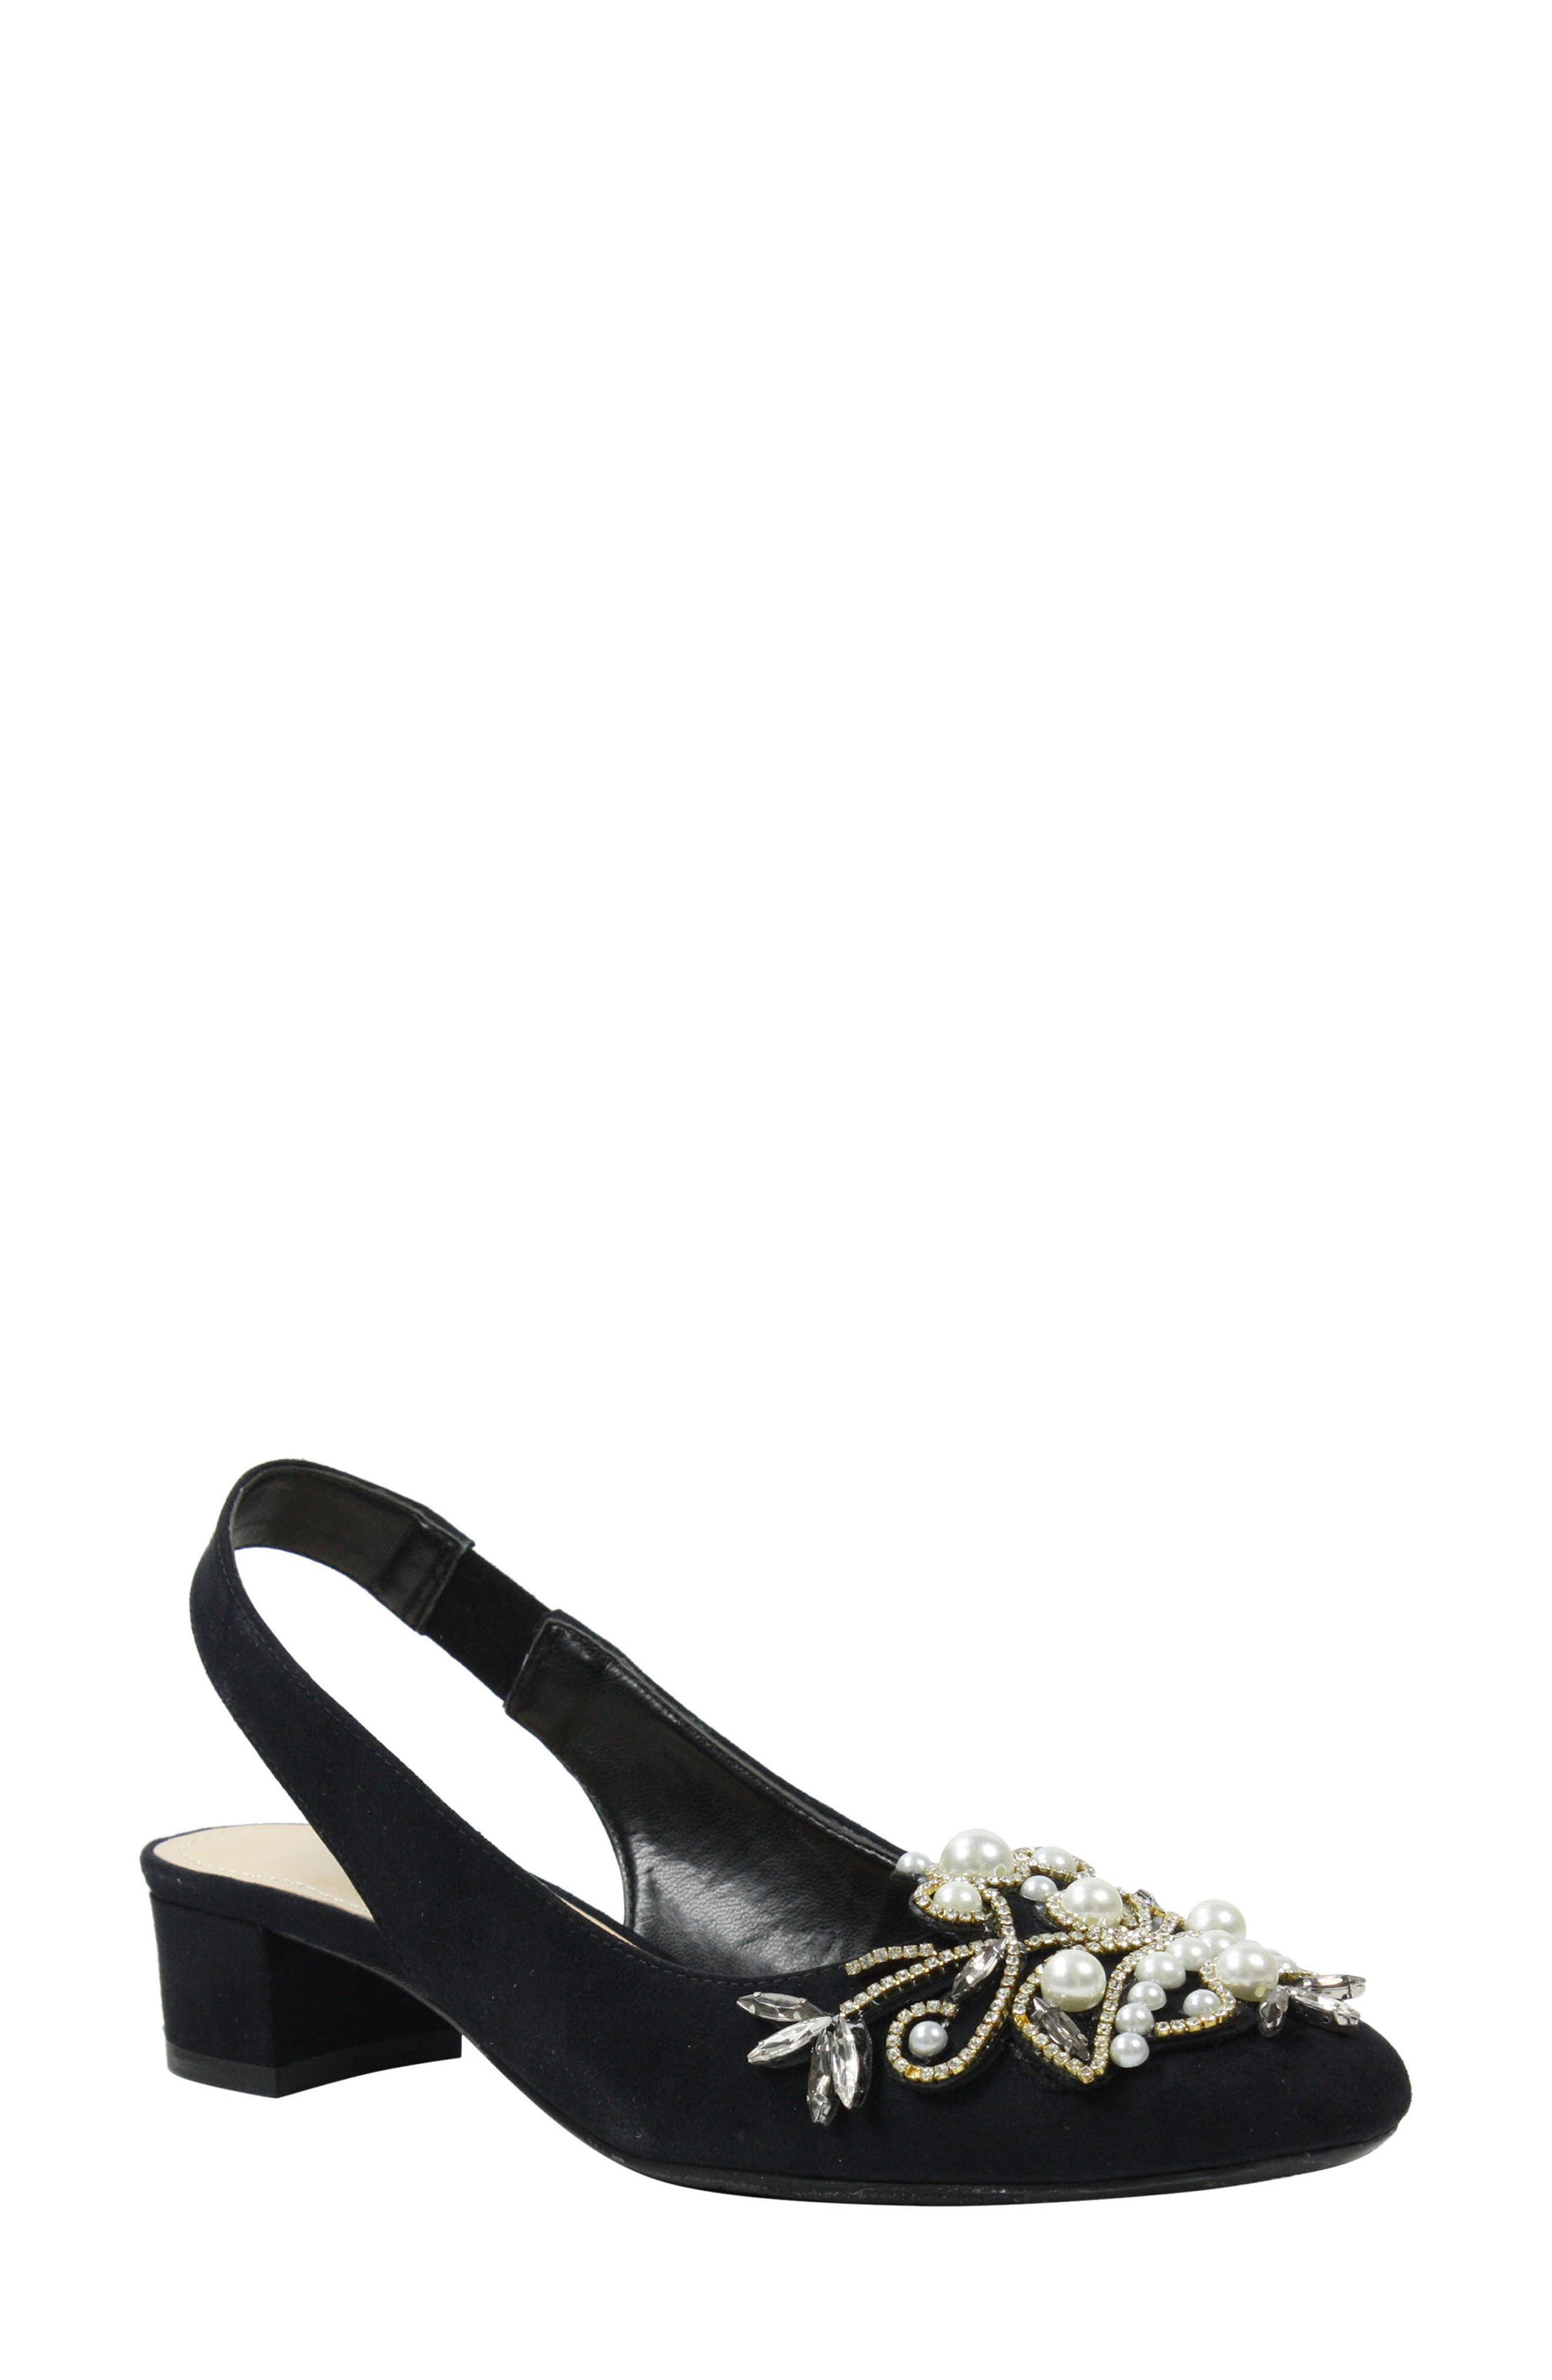 Delroy Embellished Slingback Pump,                             Main thumbnail 1, color,                             BLACK SUEDE/ WHITE PEARLS